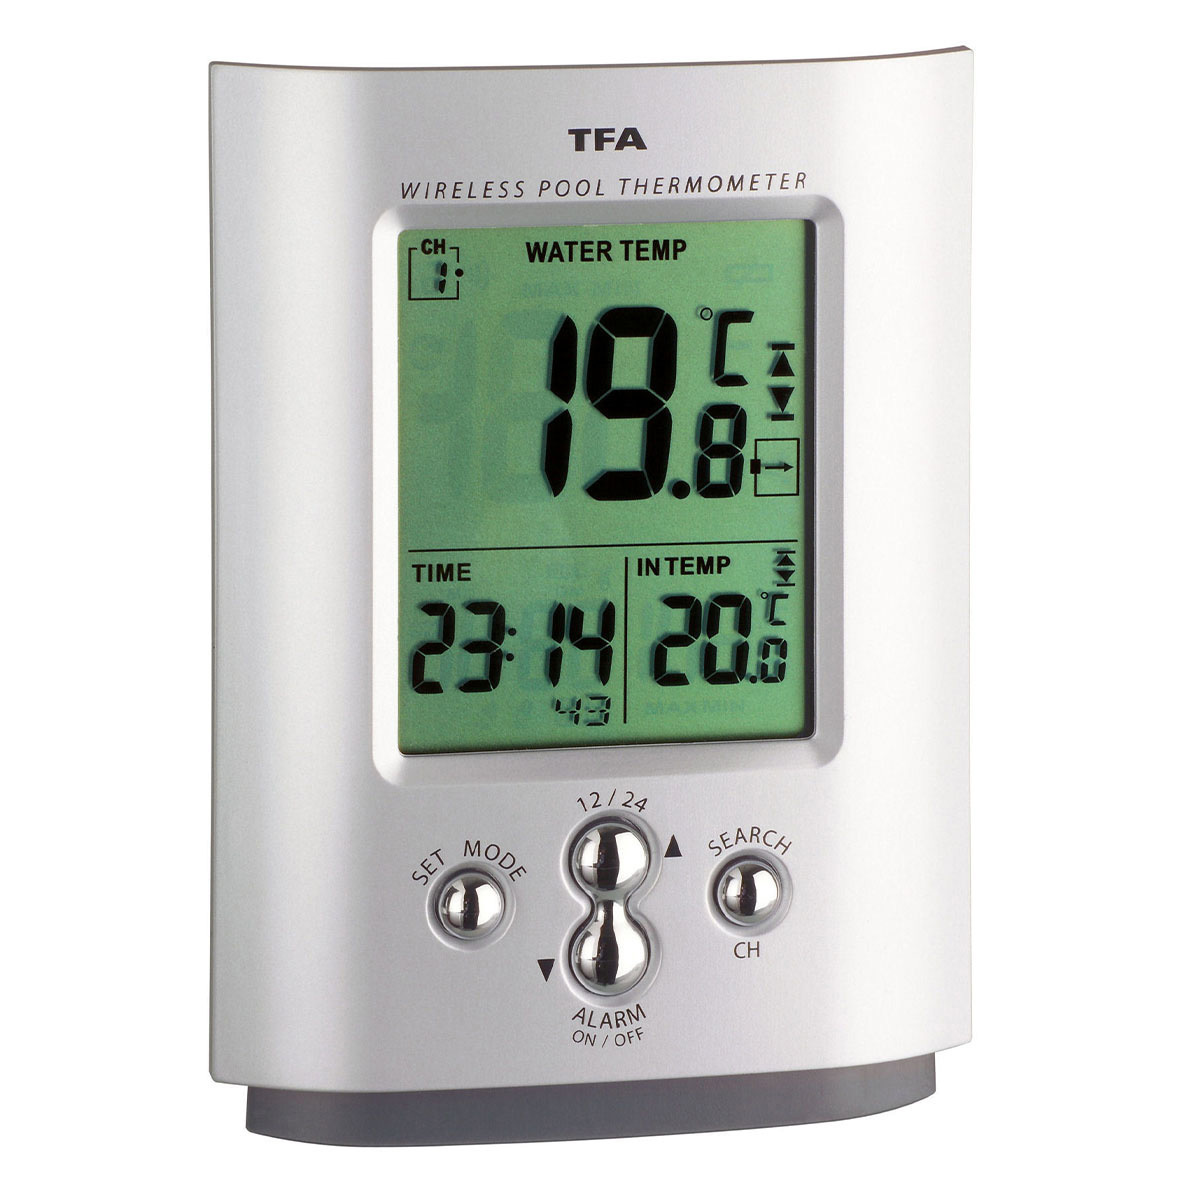 30-3033-funk-poolthermometer-miami-1200x1200px.jpg